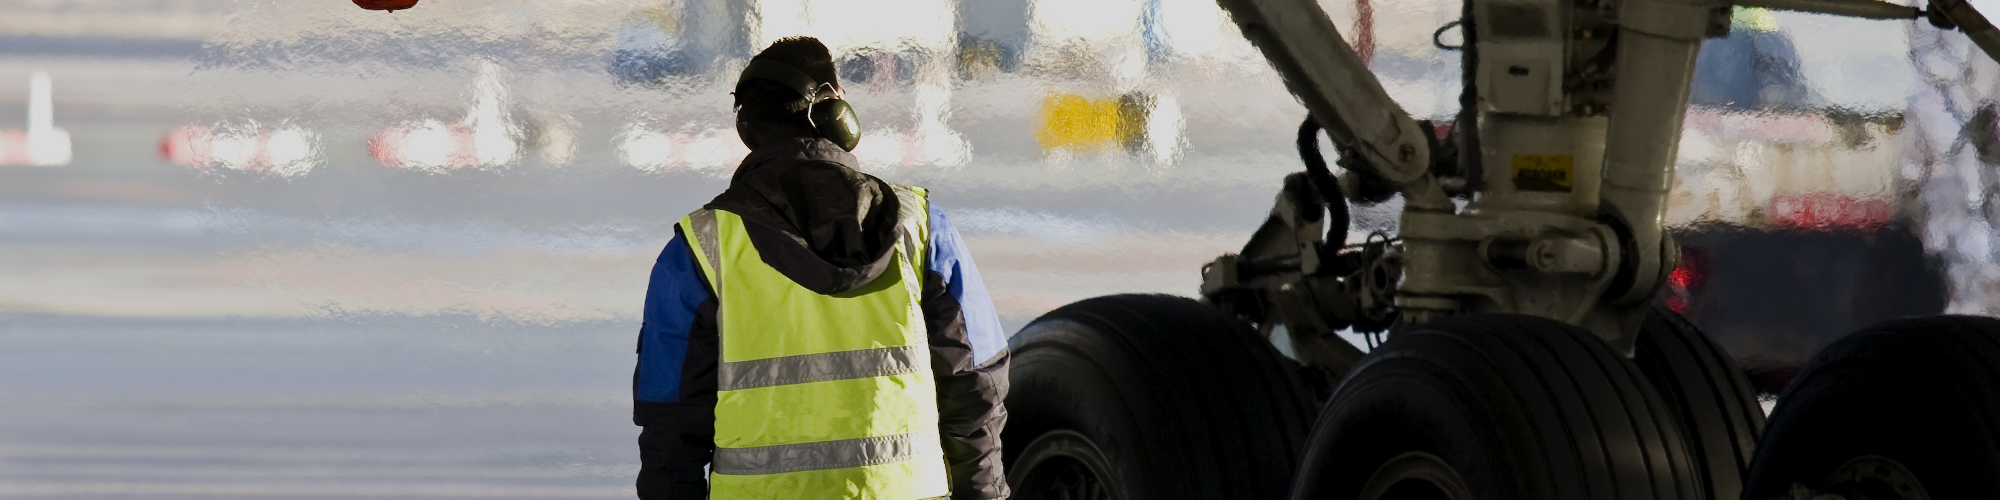 Safety Equipment Store and Protective Products in the Transportation Industry